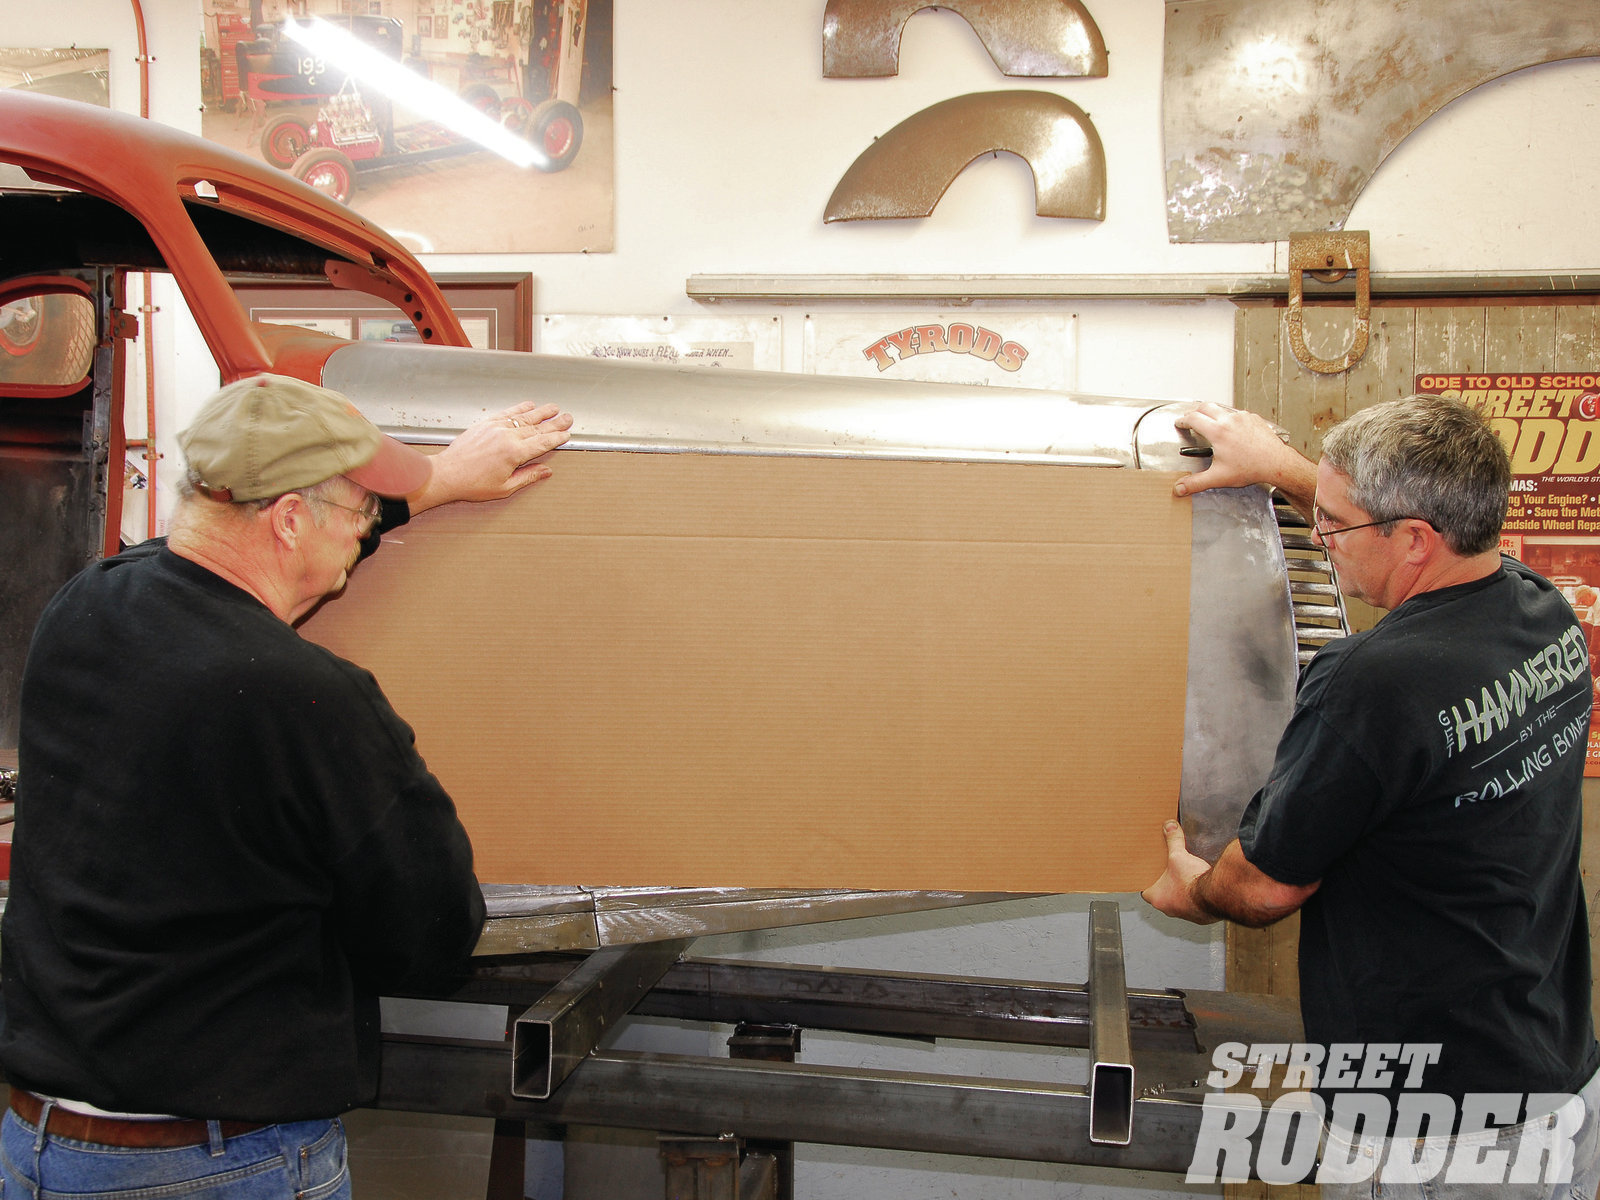 1| Rolling Bones team members Ken Schmidt (left) and Keith Cornell (right) hold a rectangular section of cardboard in place. This will act as an initial hood side template.